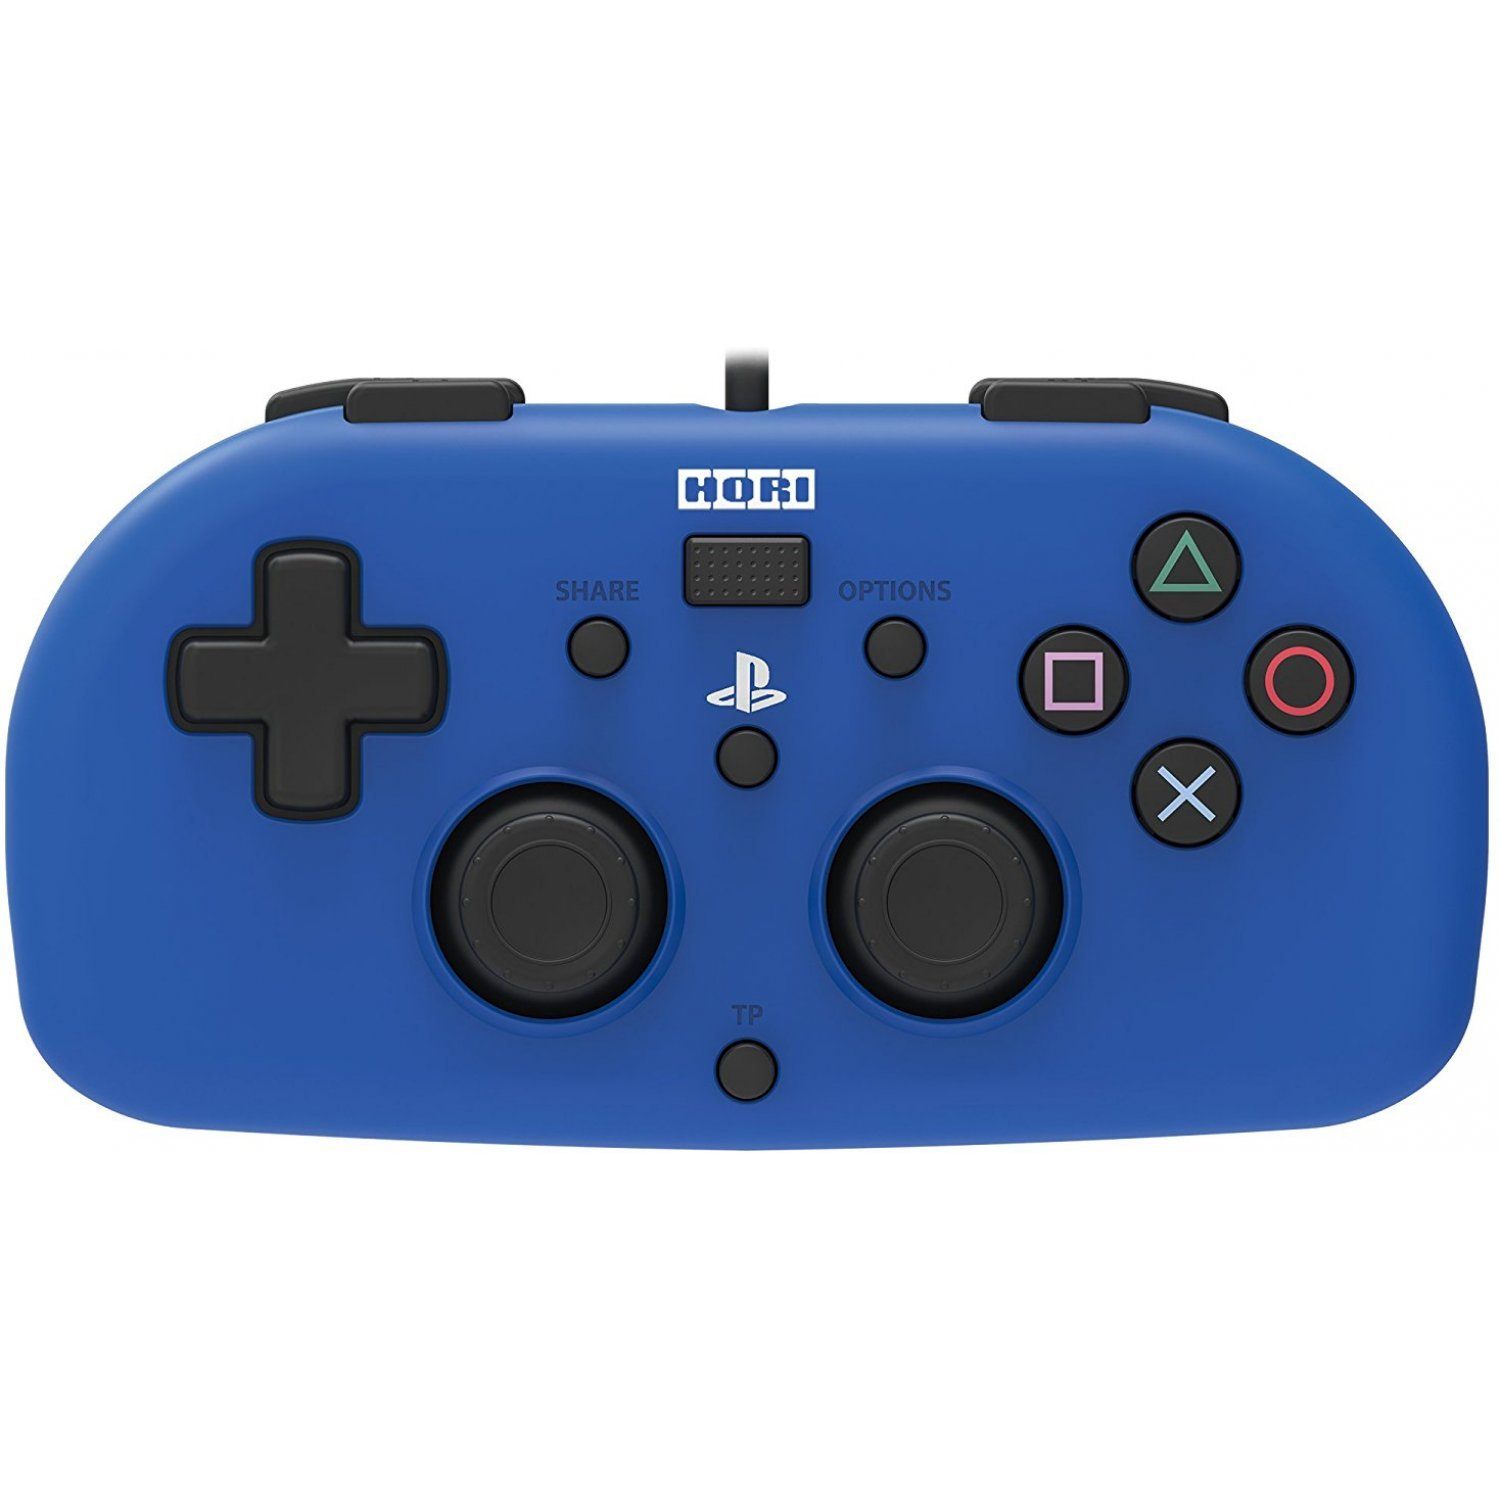 9d47e0b6 hori-wired-controller-light-for-playstation-4-blue-543553.3.jpg?oz4t89